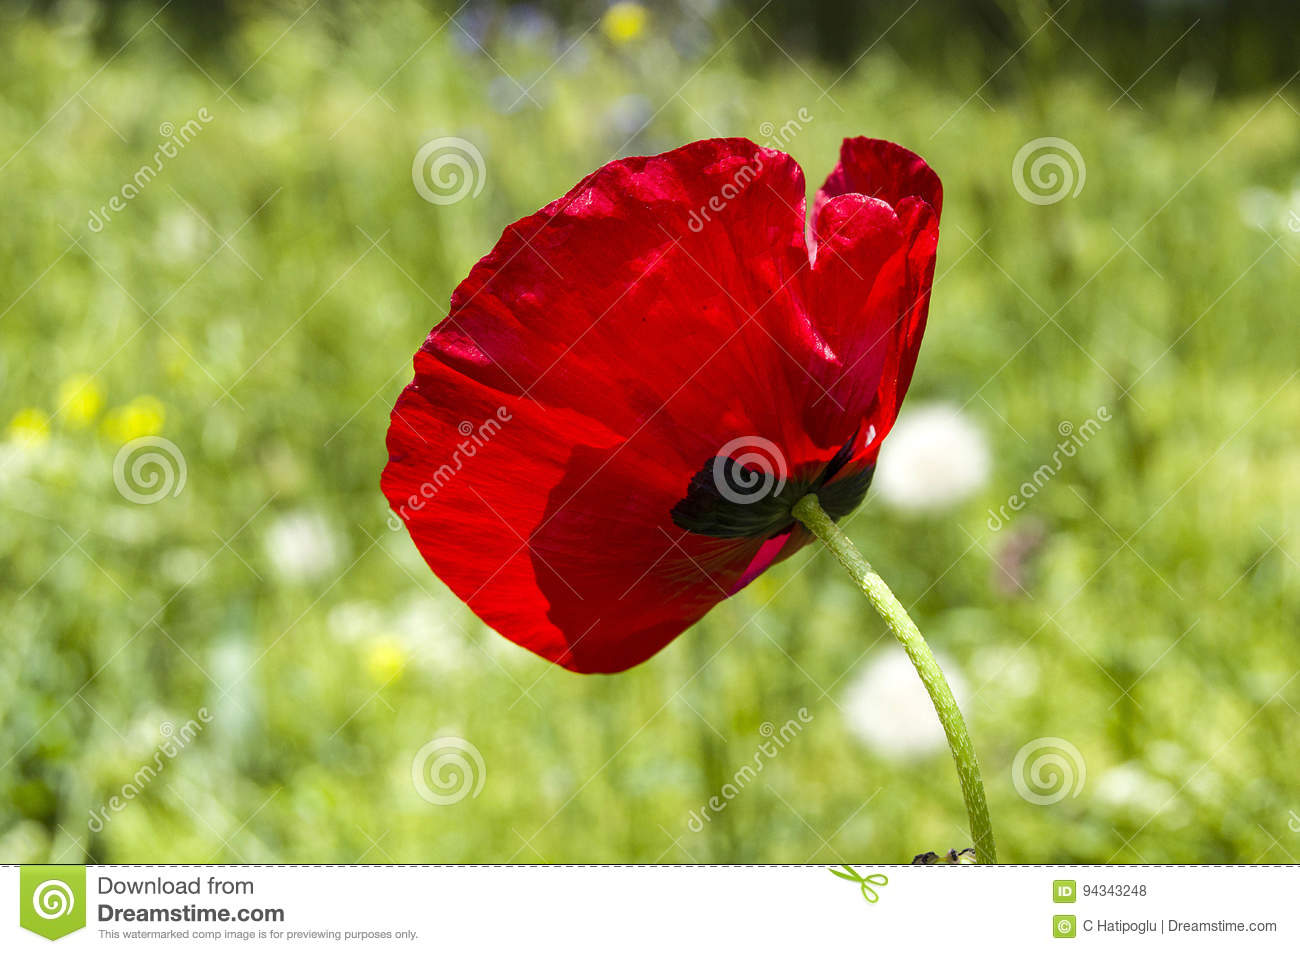 The Most Beautiful Poppy Flowers Growing In Natural Environment In